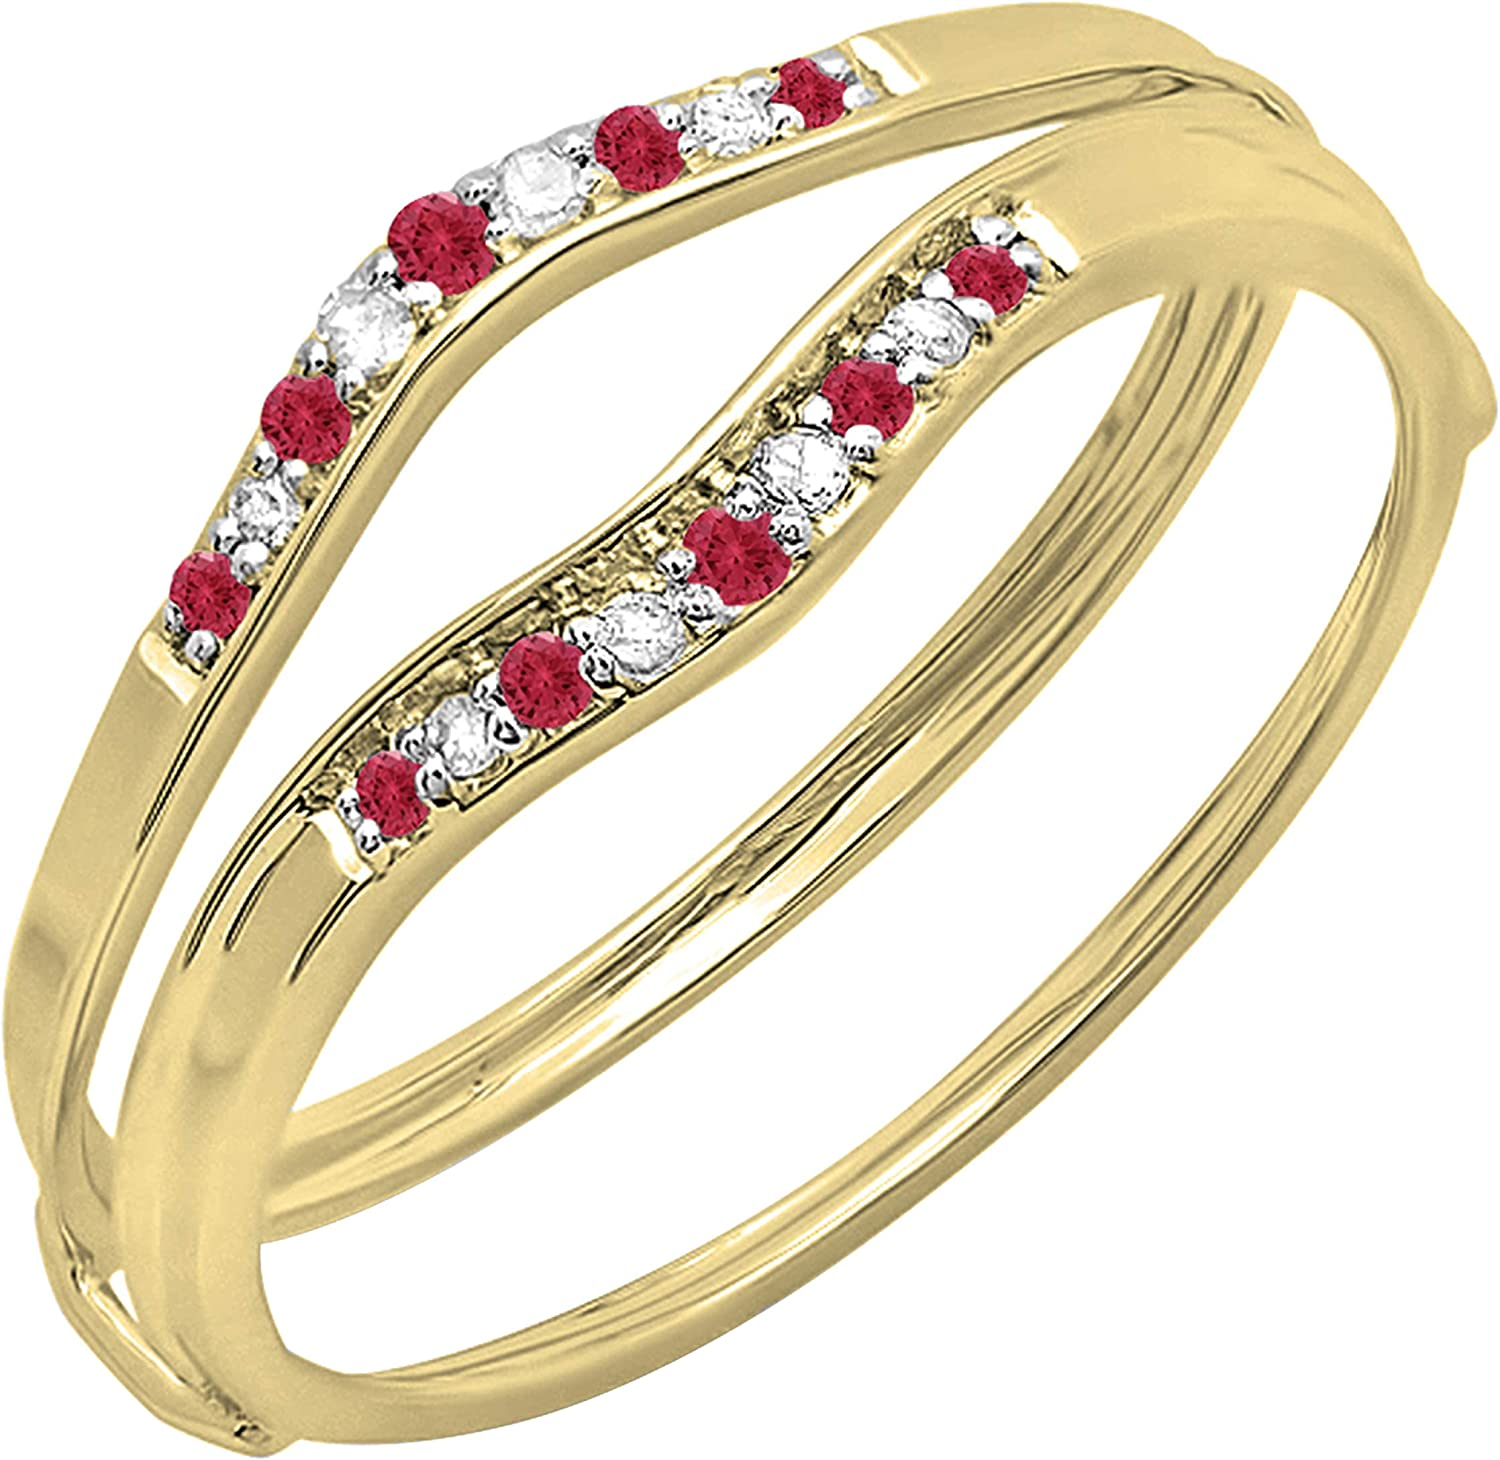 Dazzlingrock Collection Round Ruby & White Diamond Ladies Anniversary Enhancer Guard Wedding Band, Available In 10K/14K/18K Gold